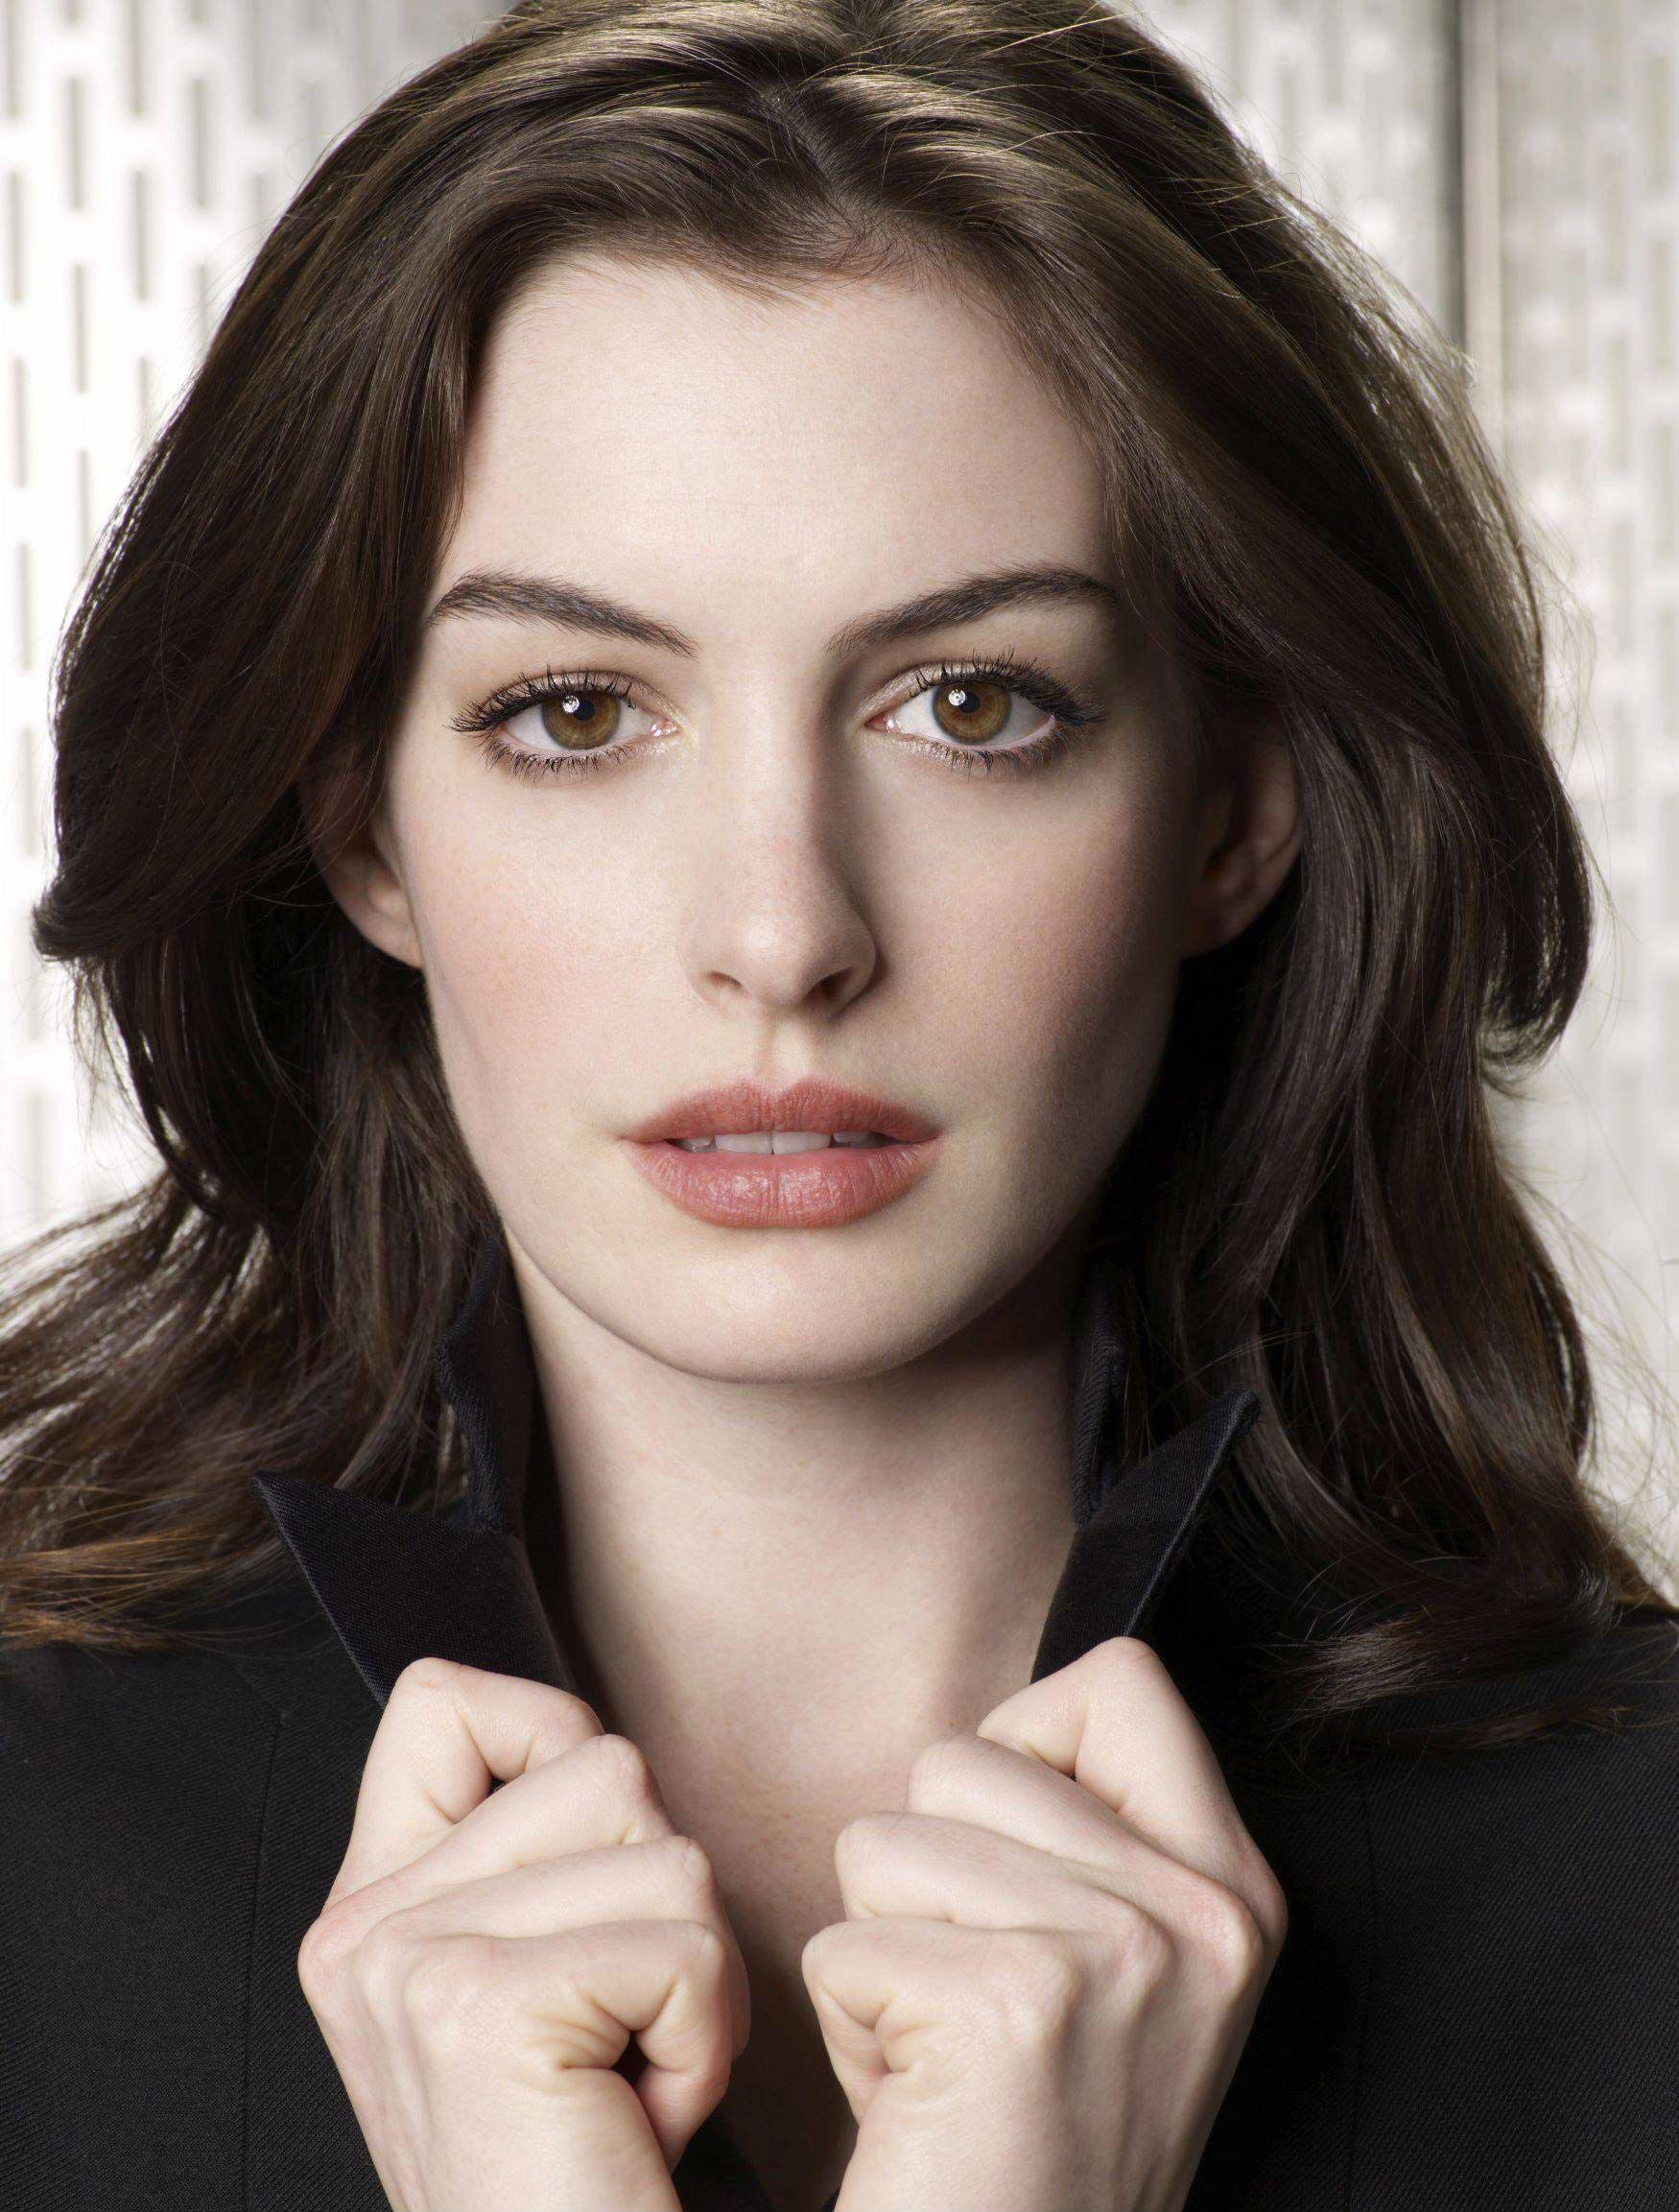 Anne Hathaway Leggy In High Heels - Get Smart Photoshoot-6585